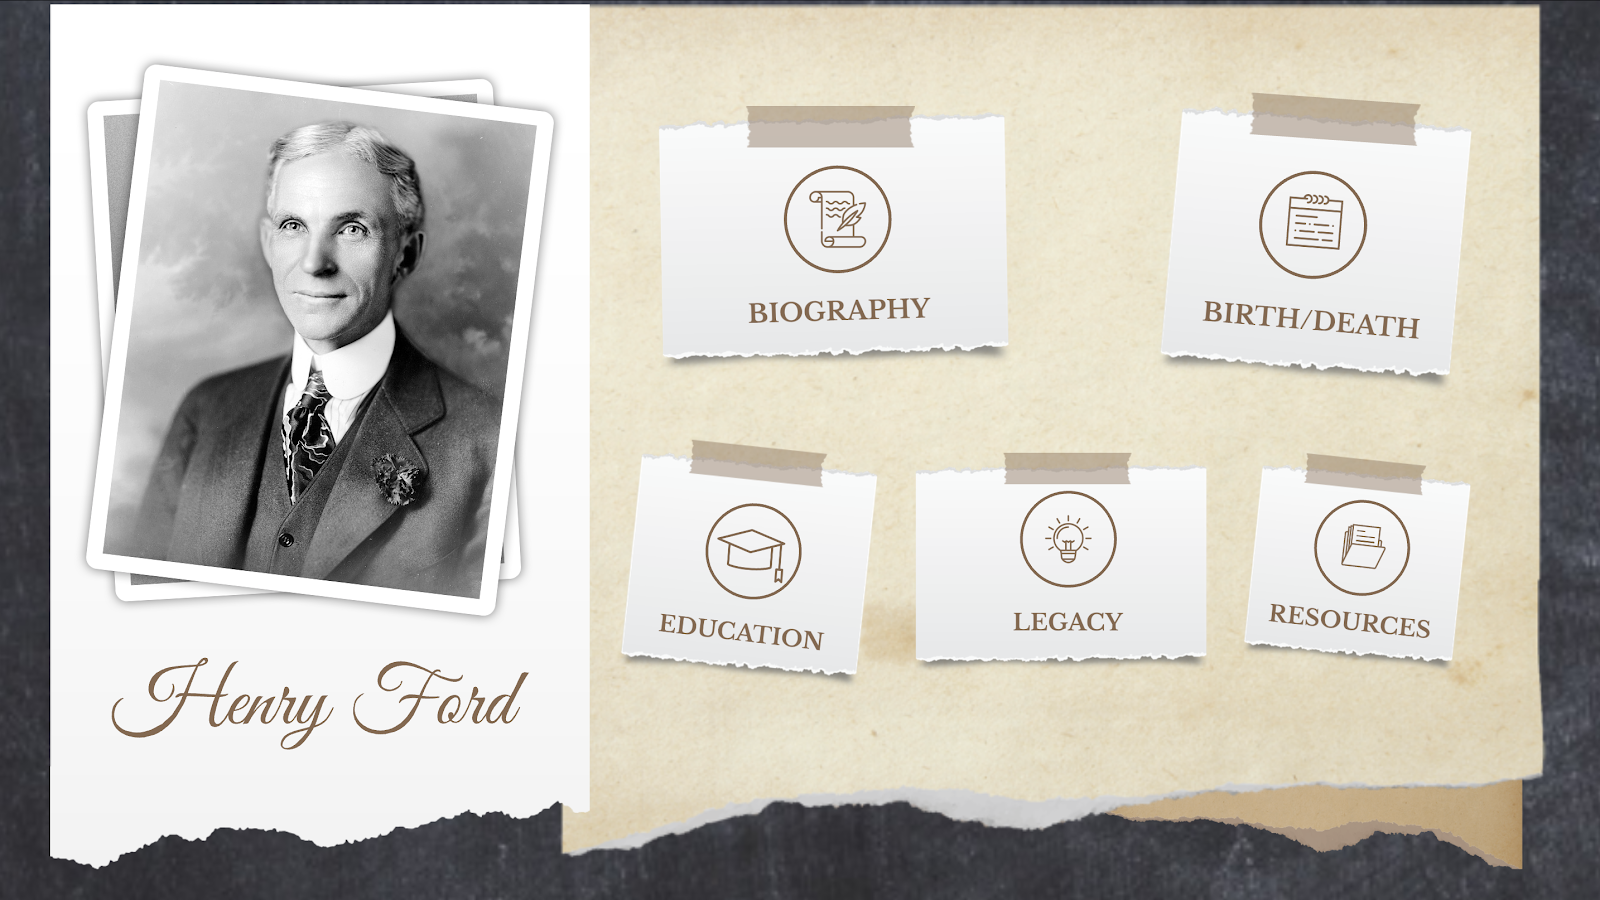 For history or English school projects, try using this Prezi presentation on Henry Ford.